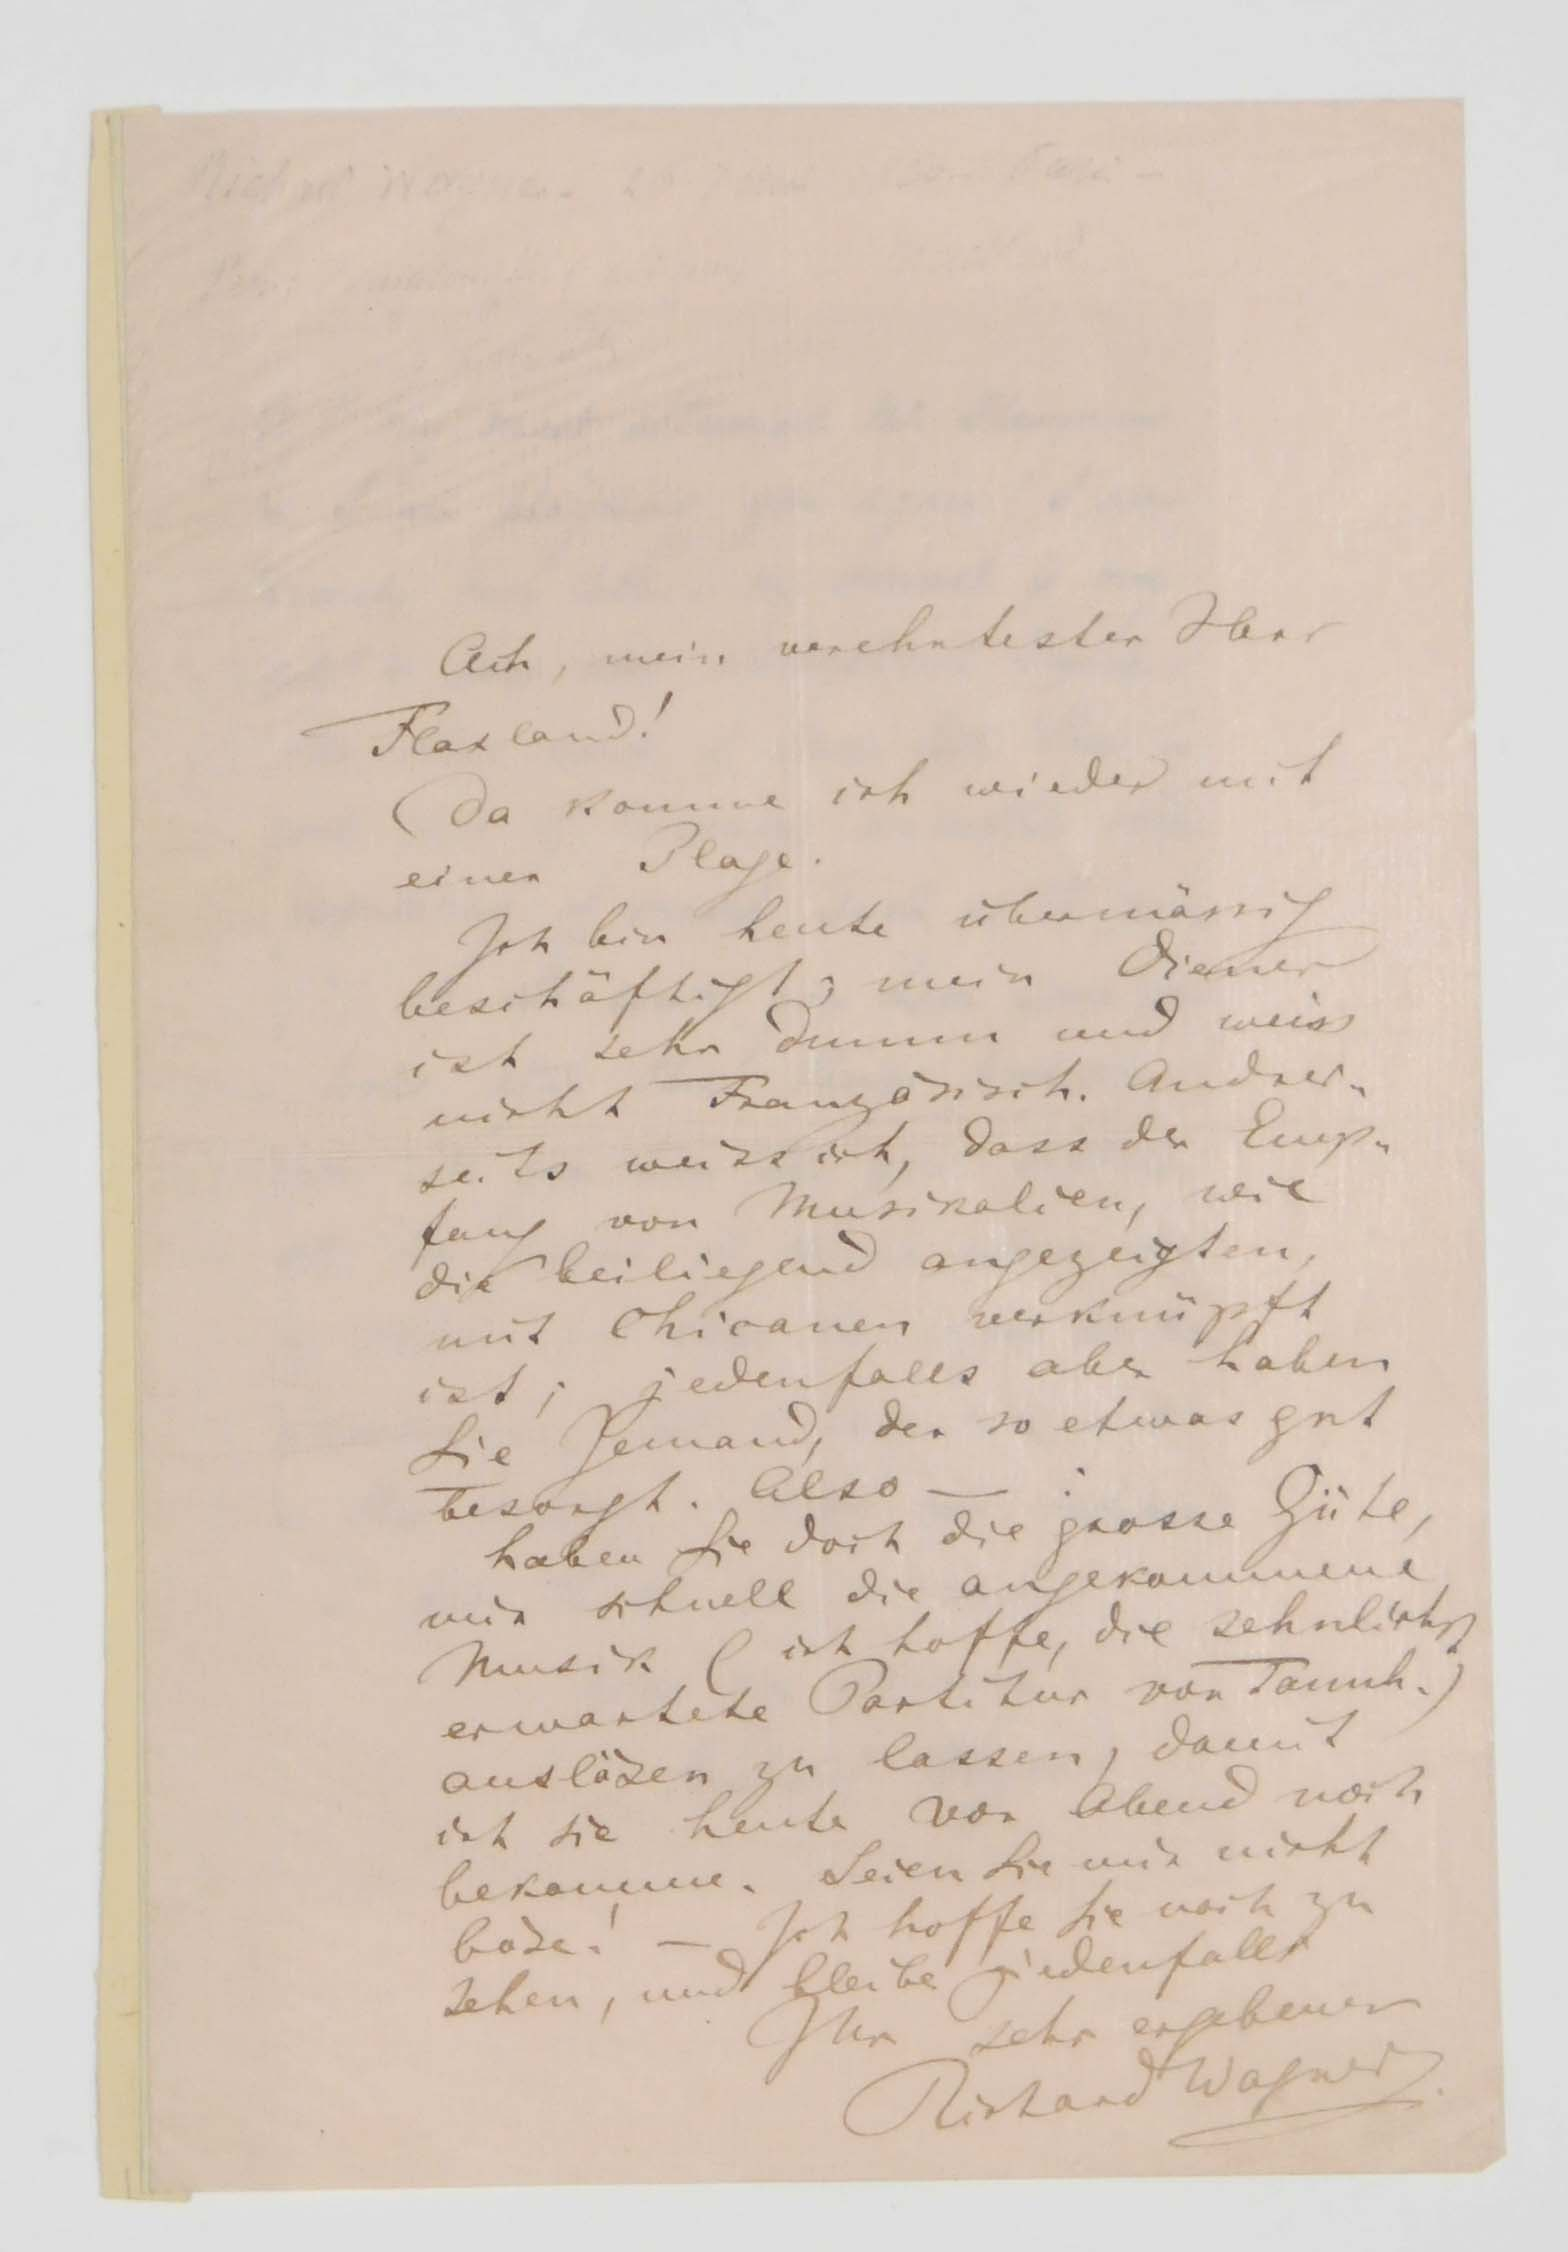 WAGNER, Richard (1813-1883). Autograph letter signed ('Richard Wagner') to [the French music publisher Gustave-Alexandre] Flaxland, n.p., n.d. [20 June 1860], one page, 8vo, on a bifolium, fine pink paper; tipped onto guards, with an English translation.